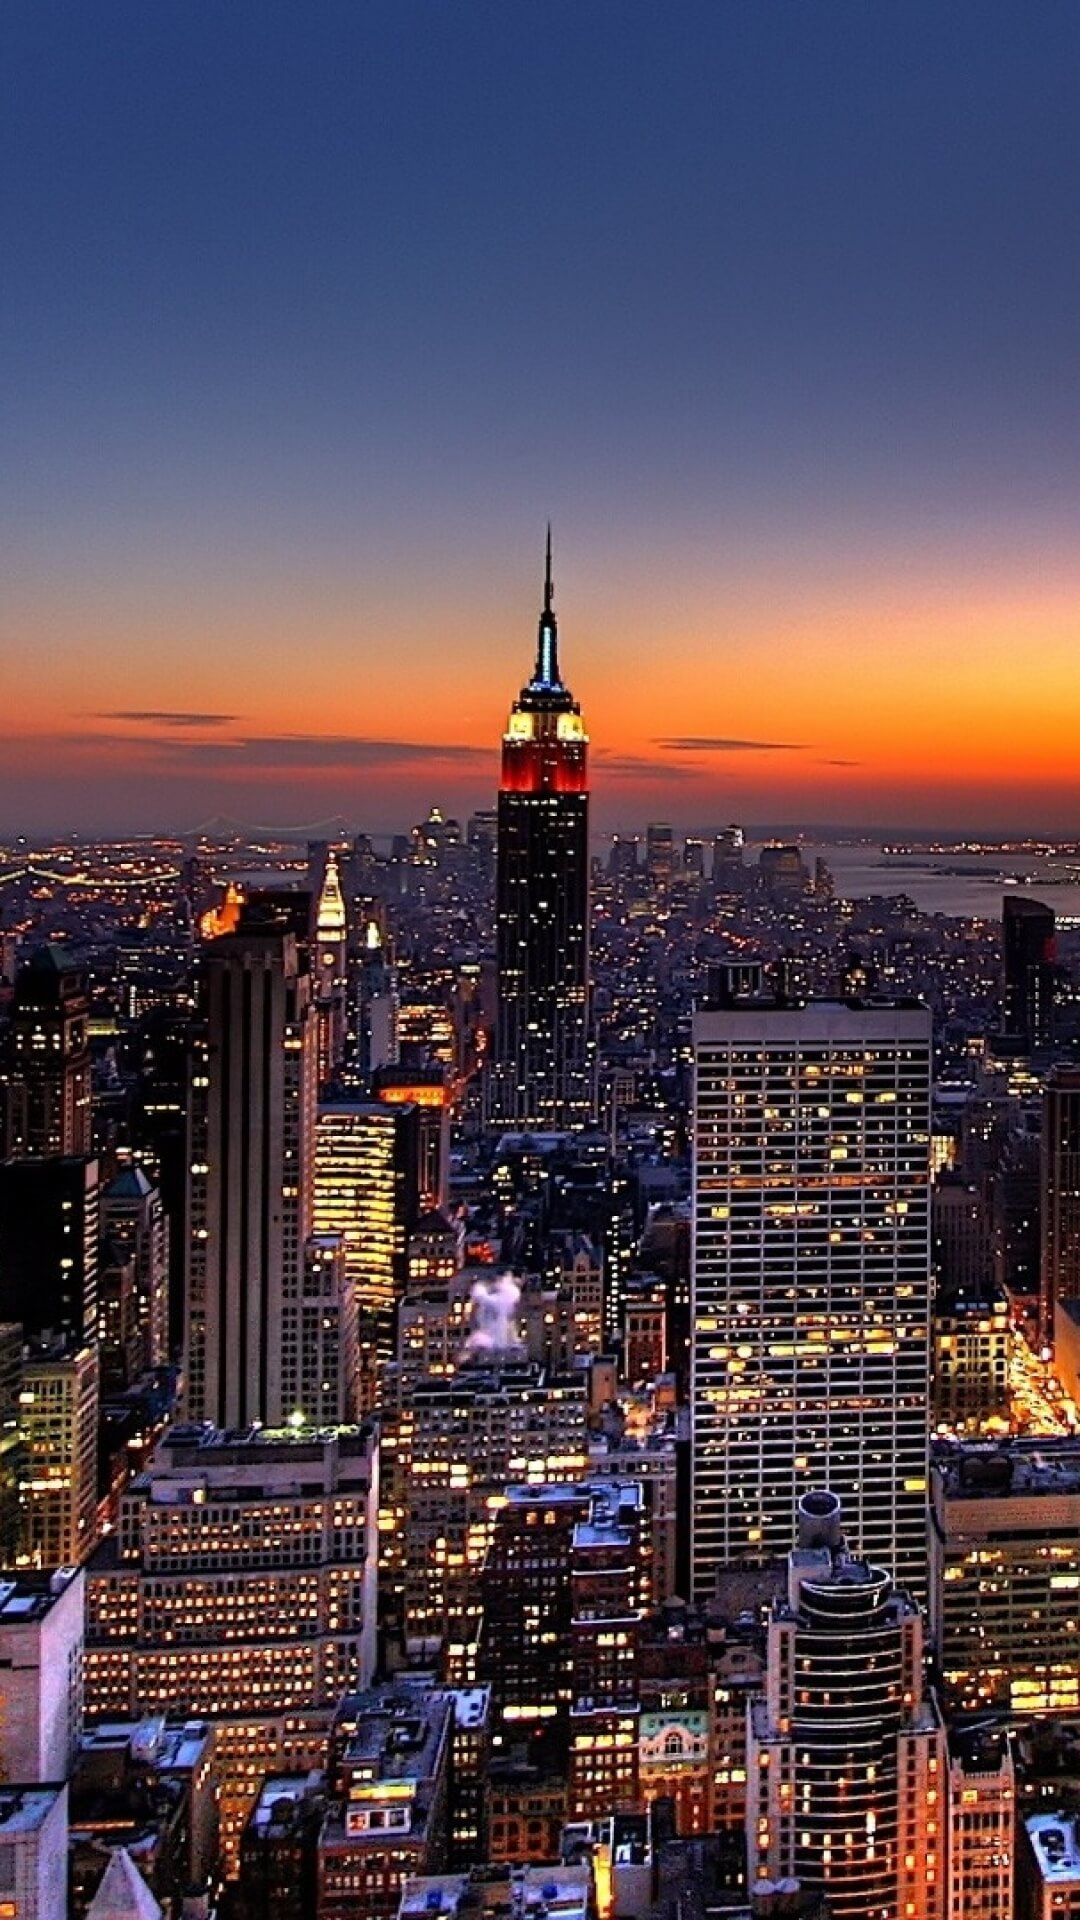 Iphone 6 Backgrounds Tumblr New York  HD Wallpaper iPhone  Wallpaper  Pinterest  iPhone